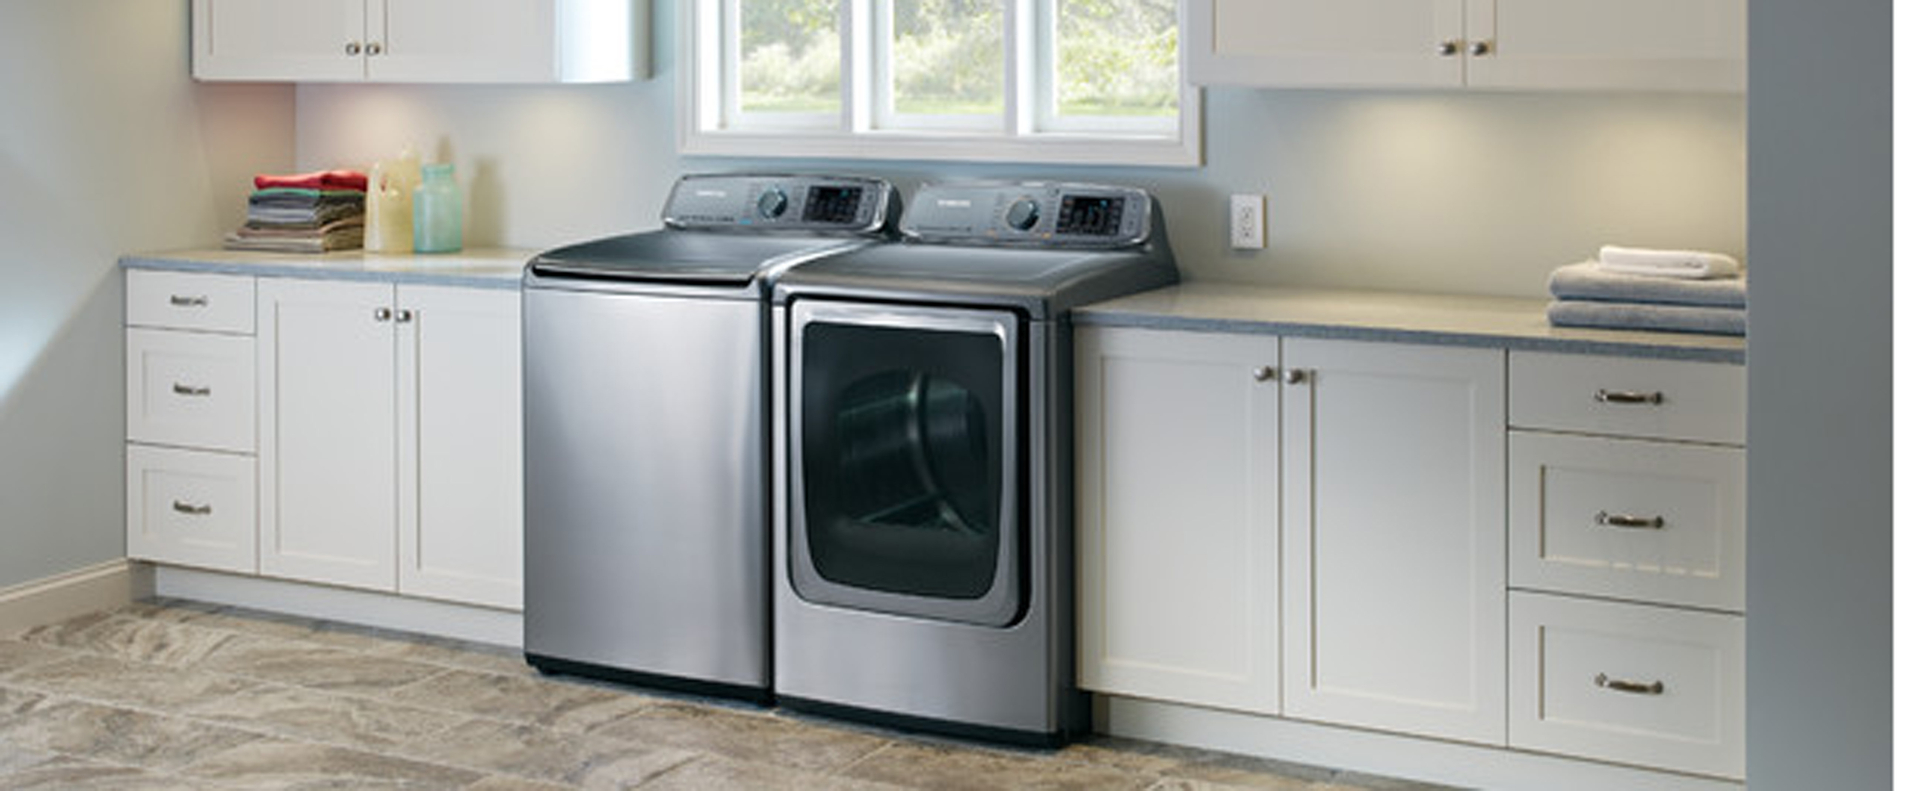 Charlotte Refrigerator Repair Rapid Appliance Repair Reliable Appliance Service Appliance